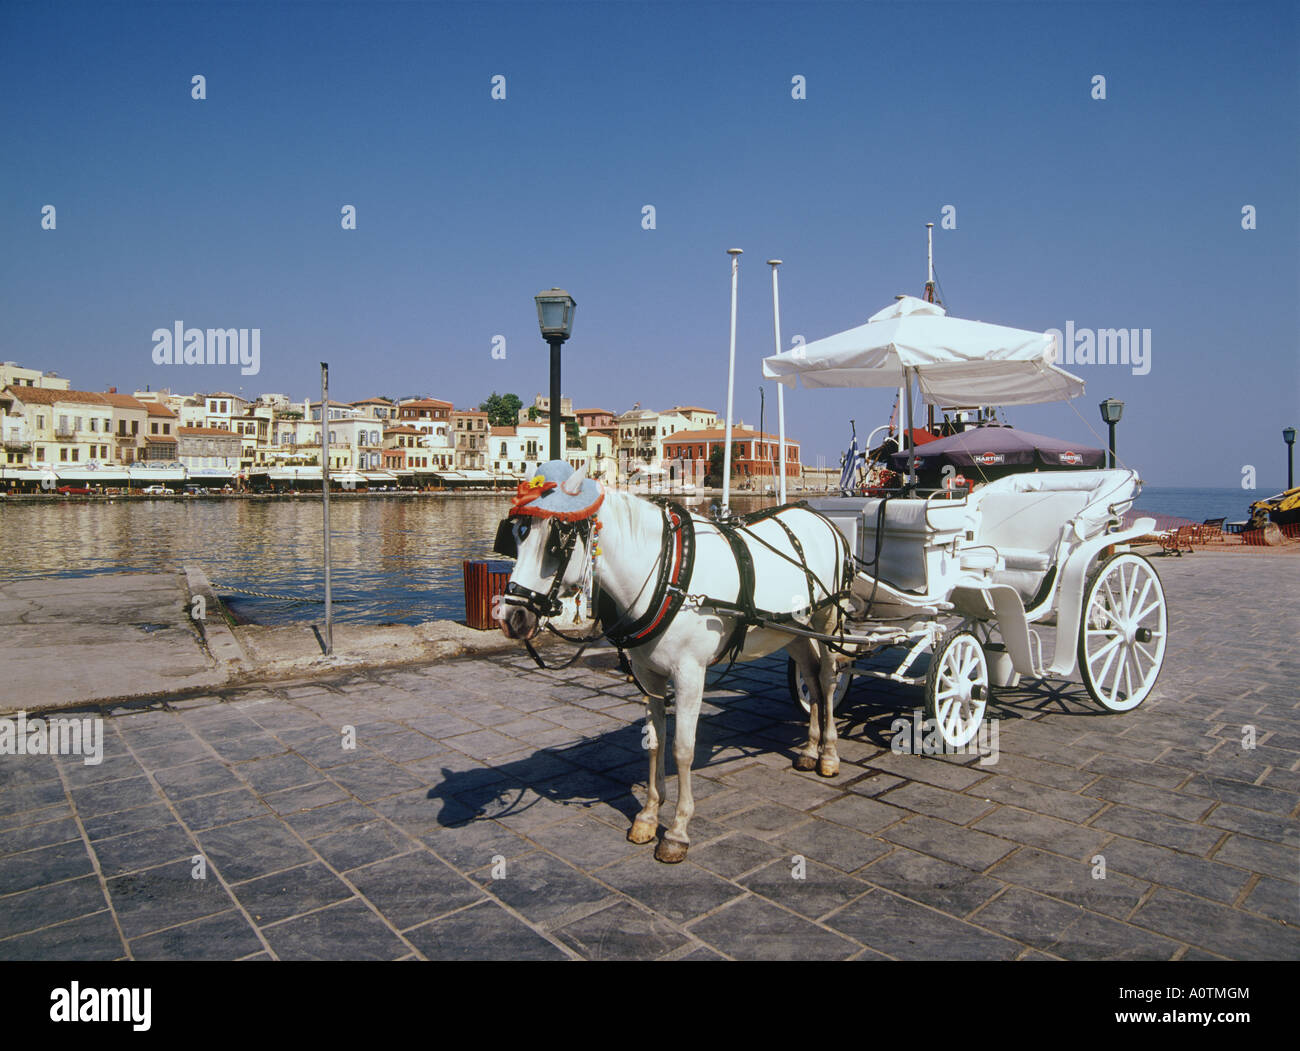 Sightseeing carriage at Venetian Port - Stock Image